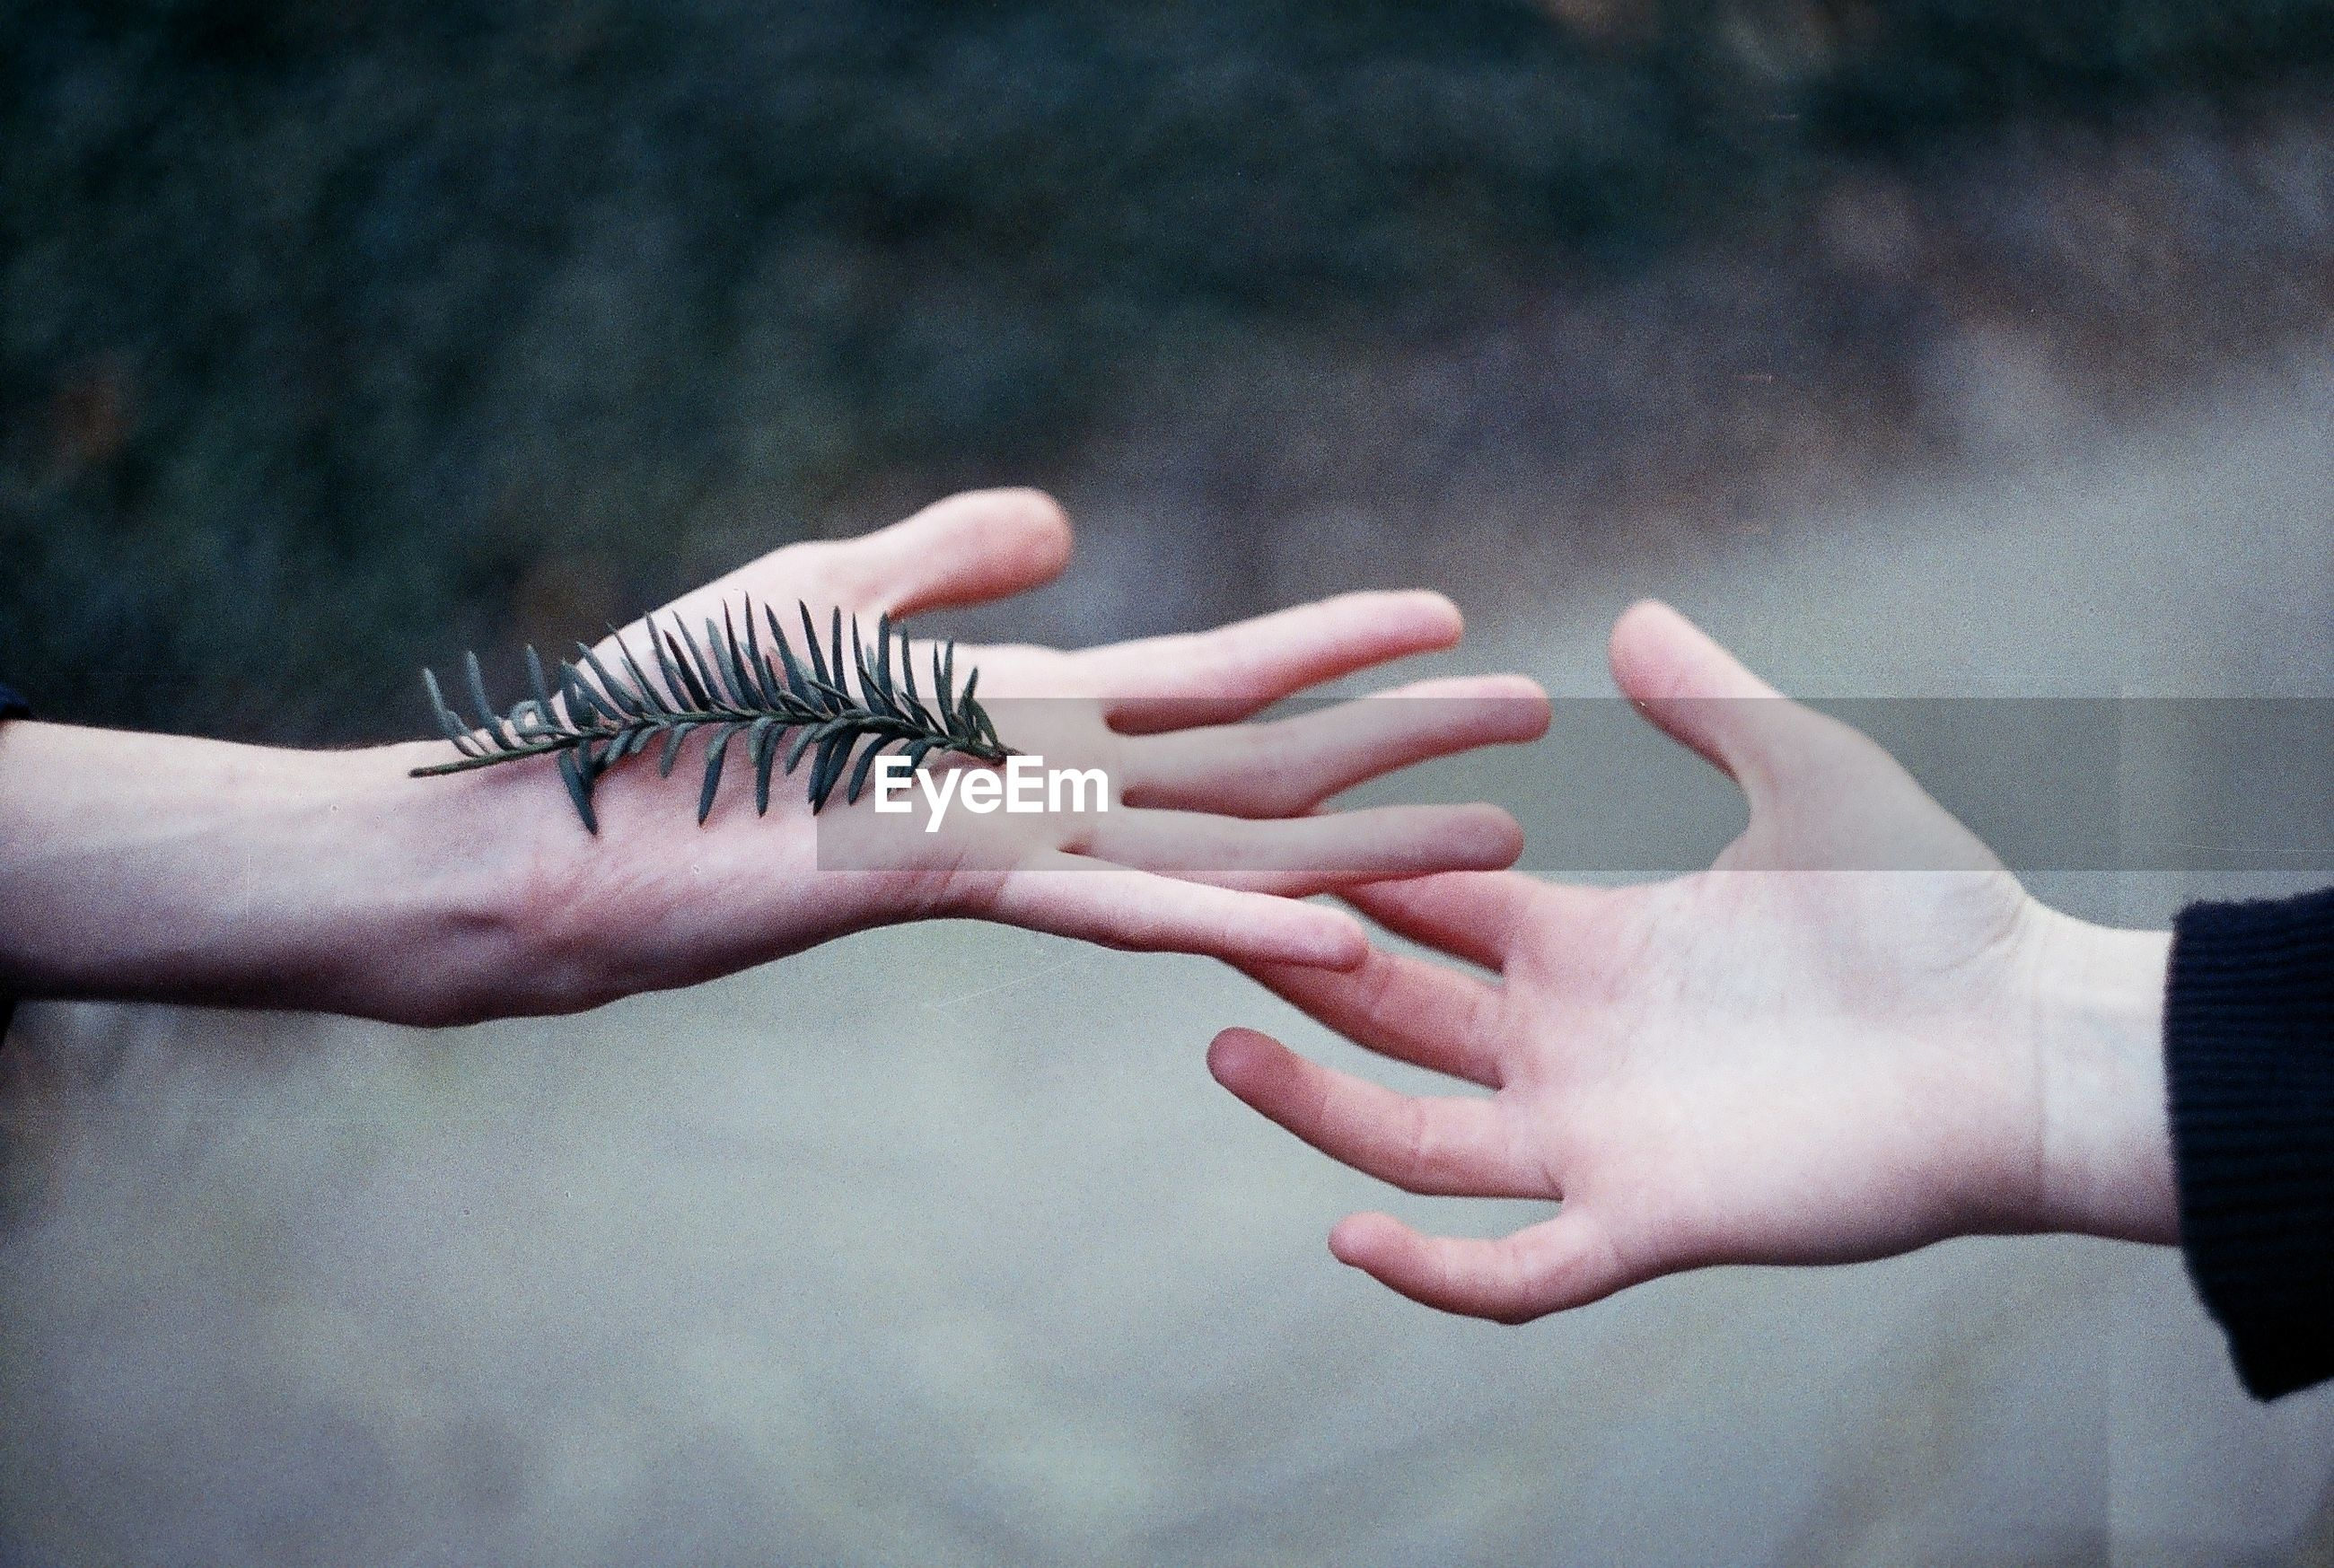 Cropped image of hands with pine twig